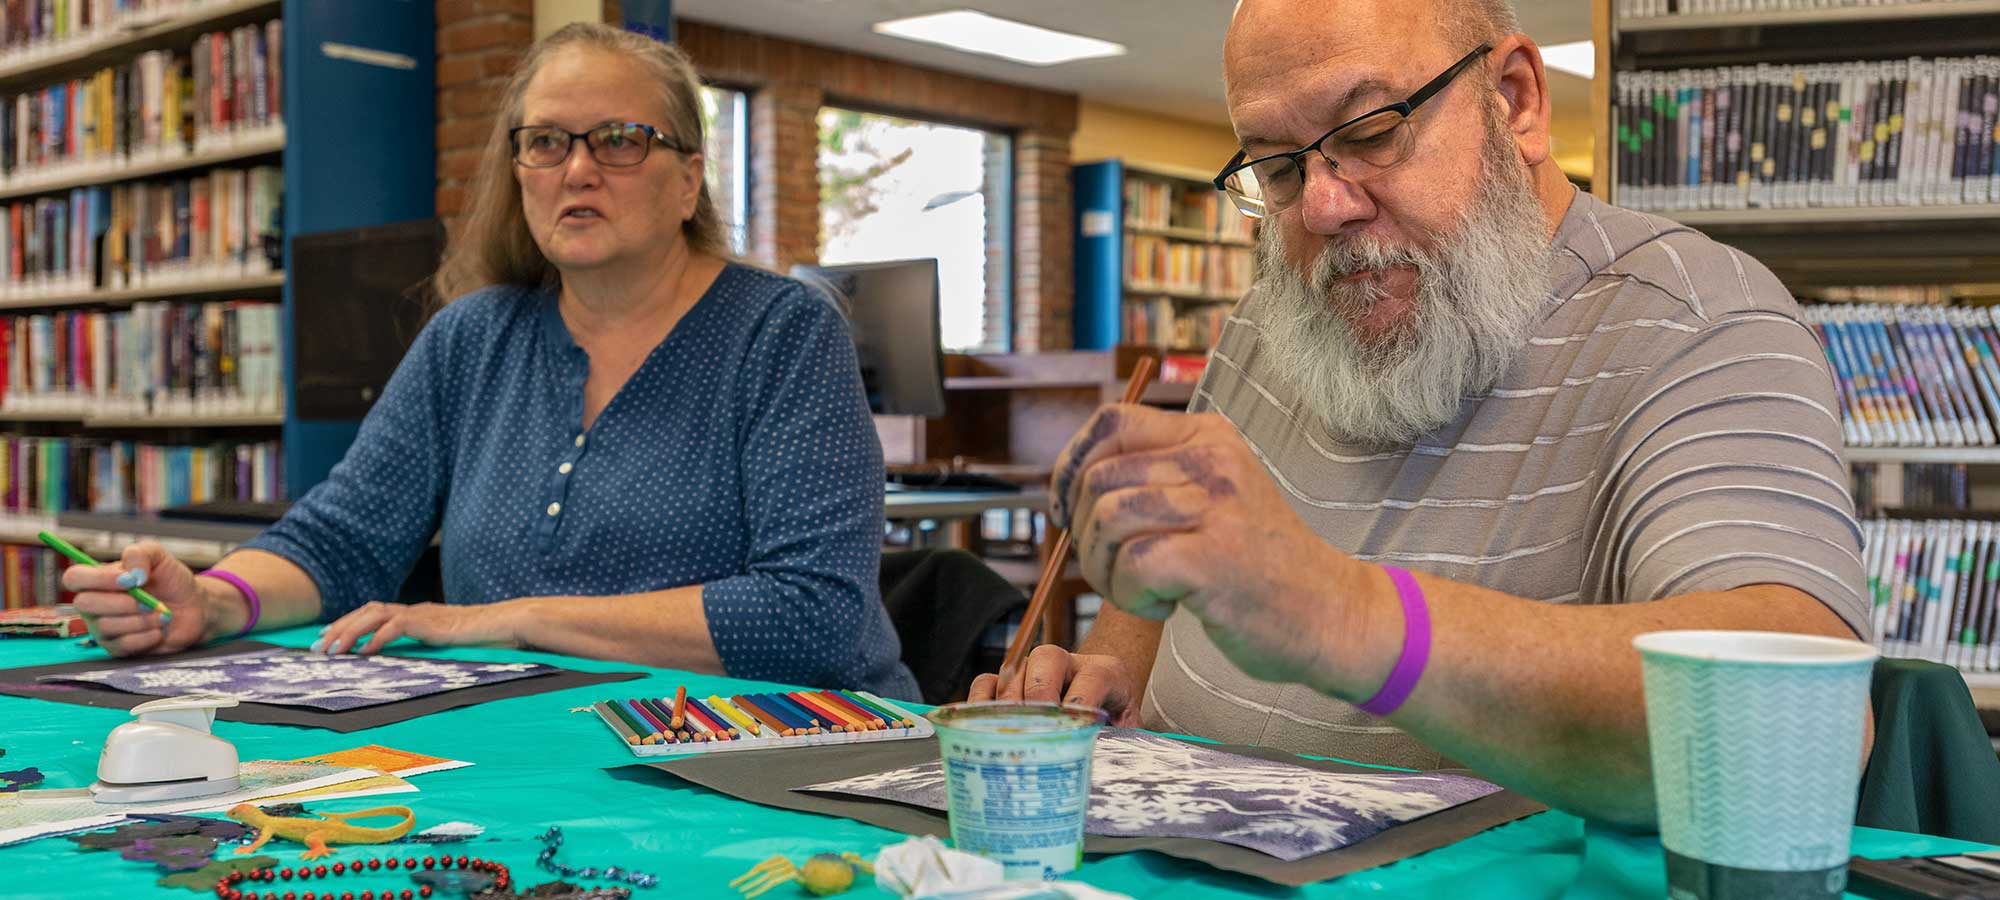 Brandi and Bob regularly attend the Memory Cafés and enjoy meeting new people. Bob has met people who remind him that he once had great skill as a negotiator. Making connections adds relevance to his life beyond his diagnosis.